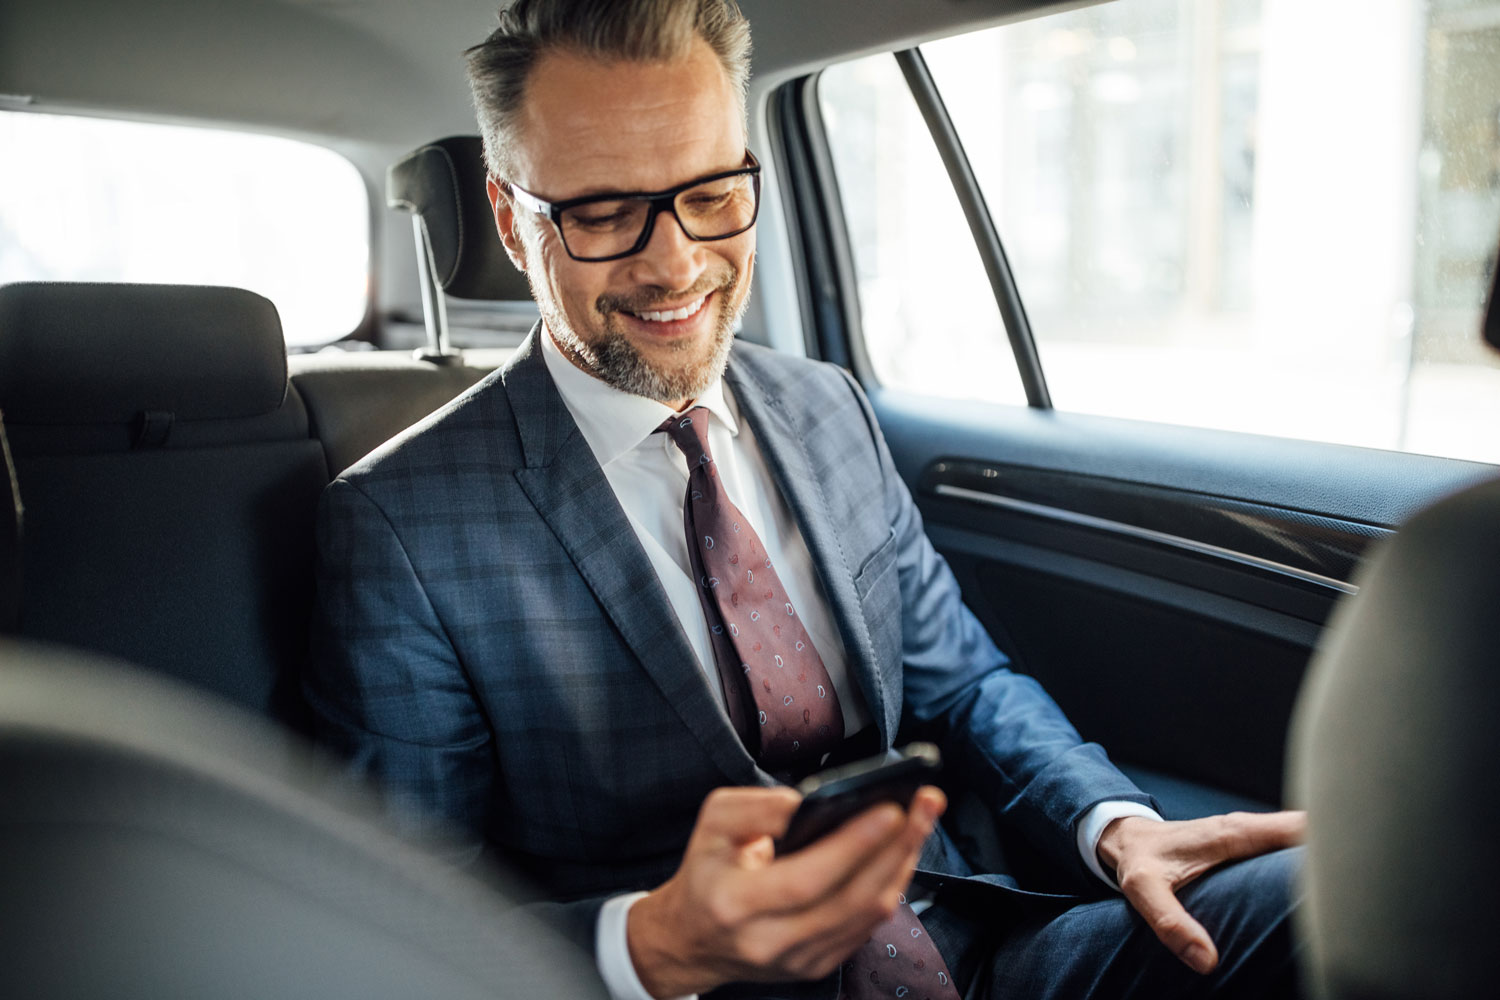 professional on phone opening a private access account